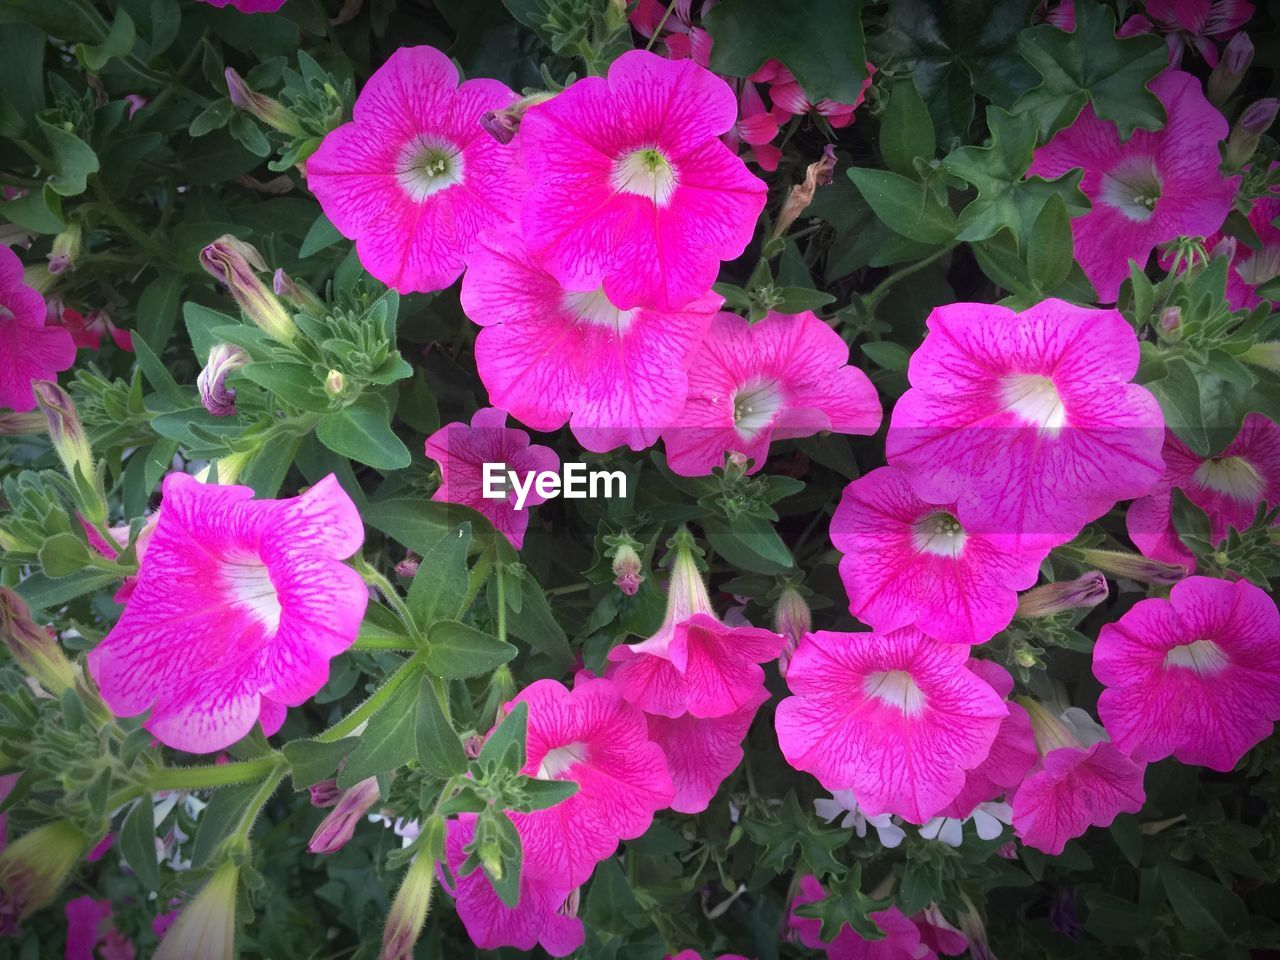 flower, growth, plant, leaf, high angle view, petal, outdoors, beauty in nature, day, nature, blooming, no people, fragility, freshness, flower head, petunia